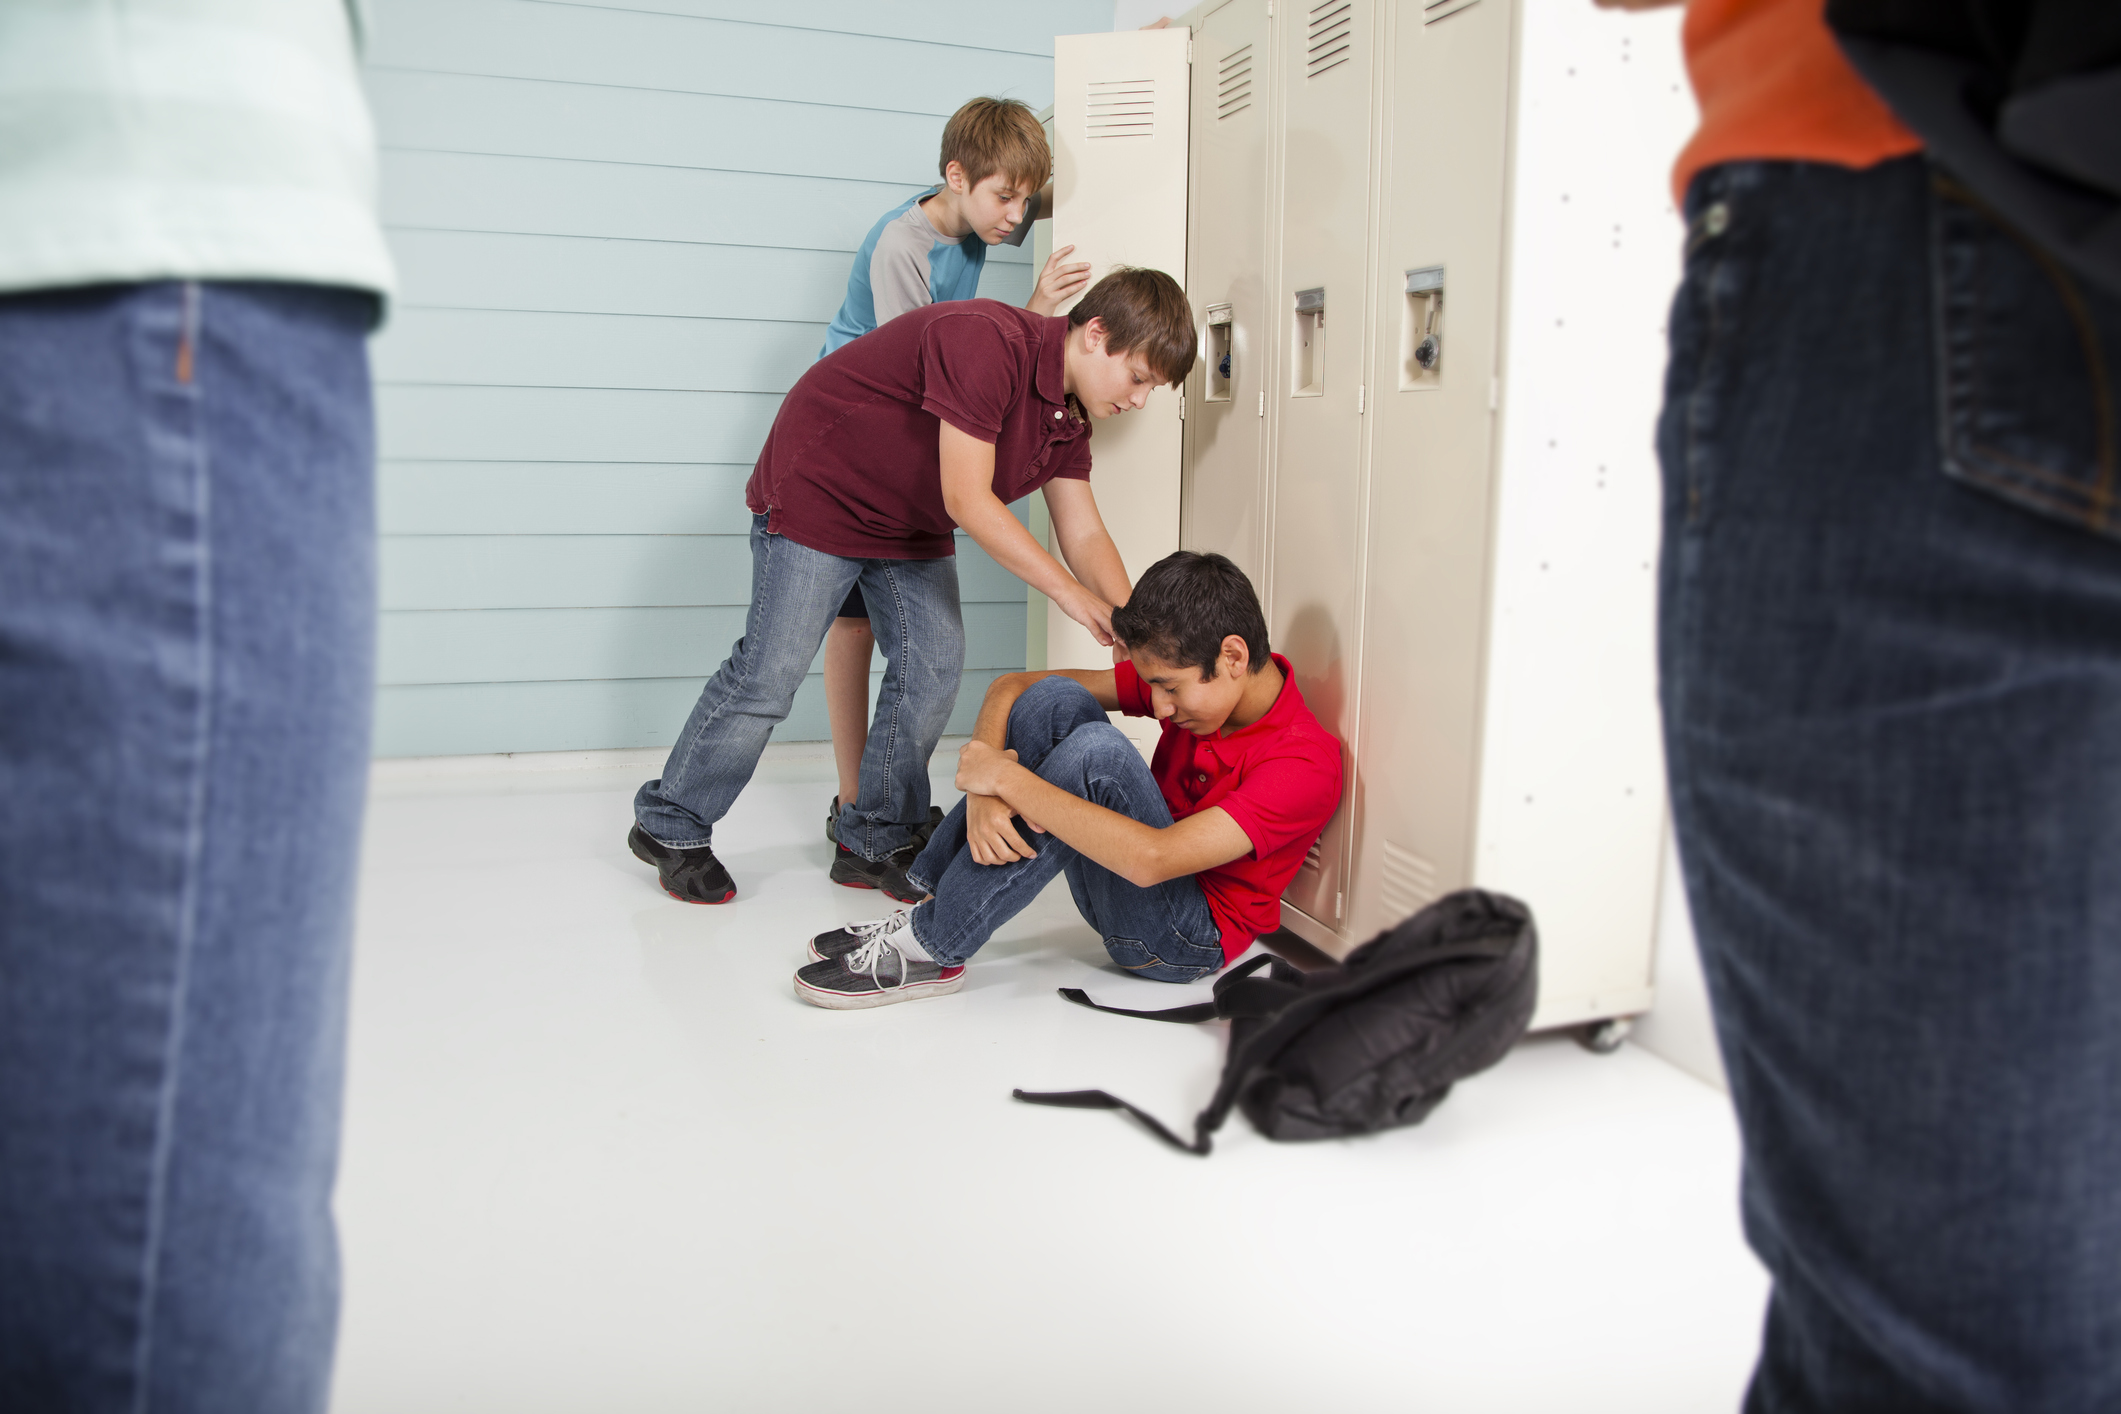 Teenage boys bully classmate in school hallway.